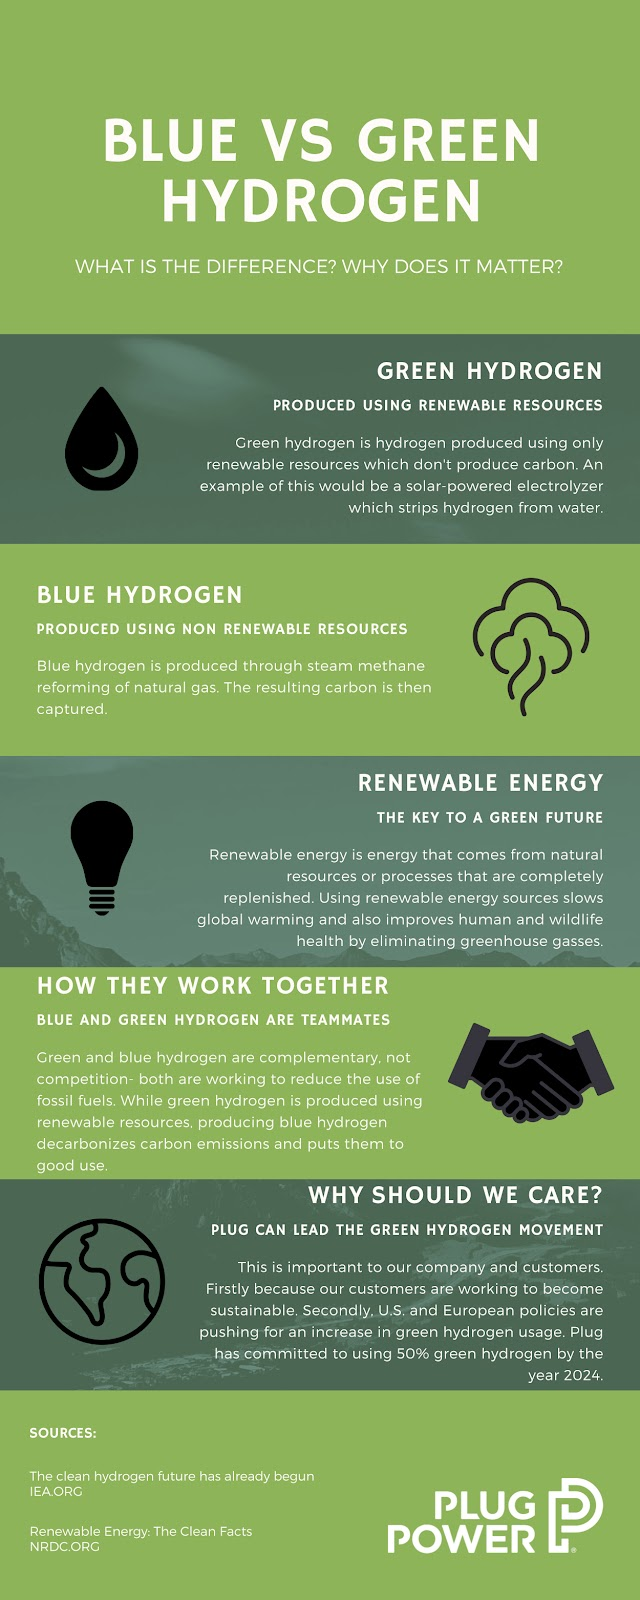 Blue vs. Green Hydrogen